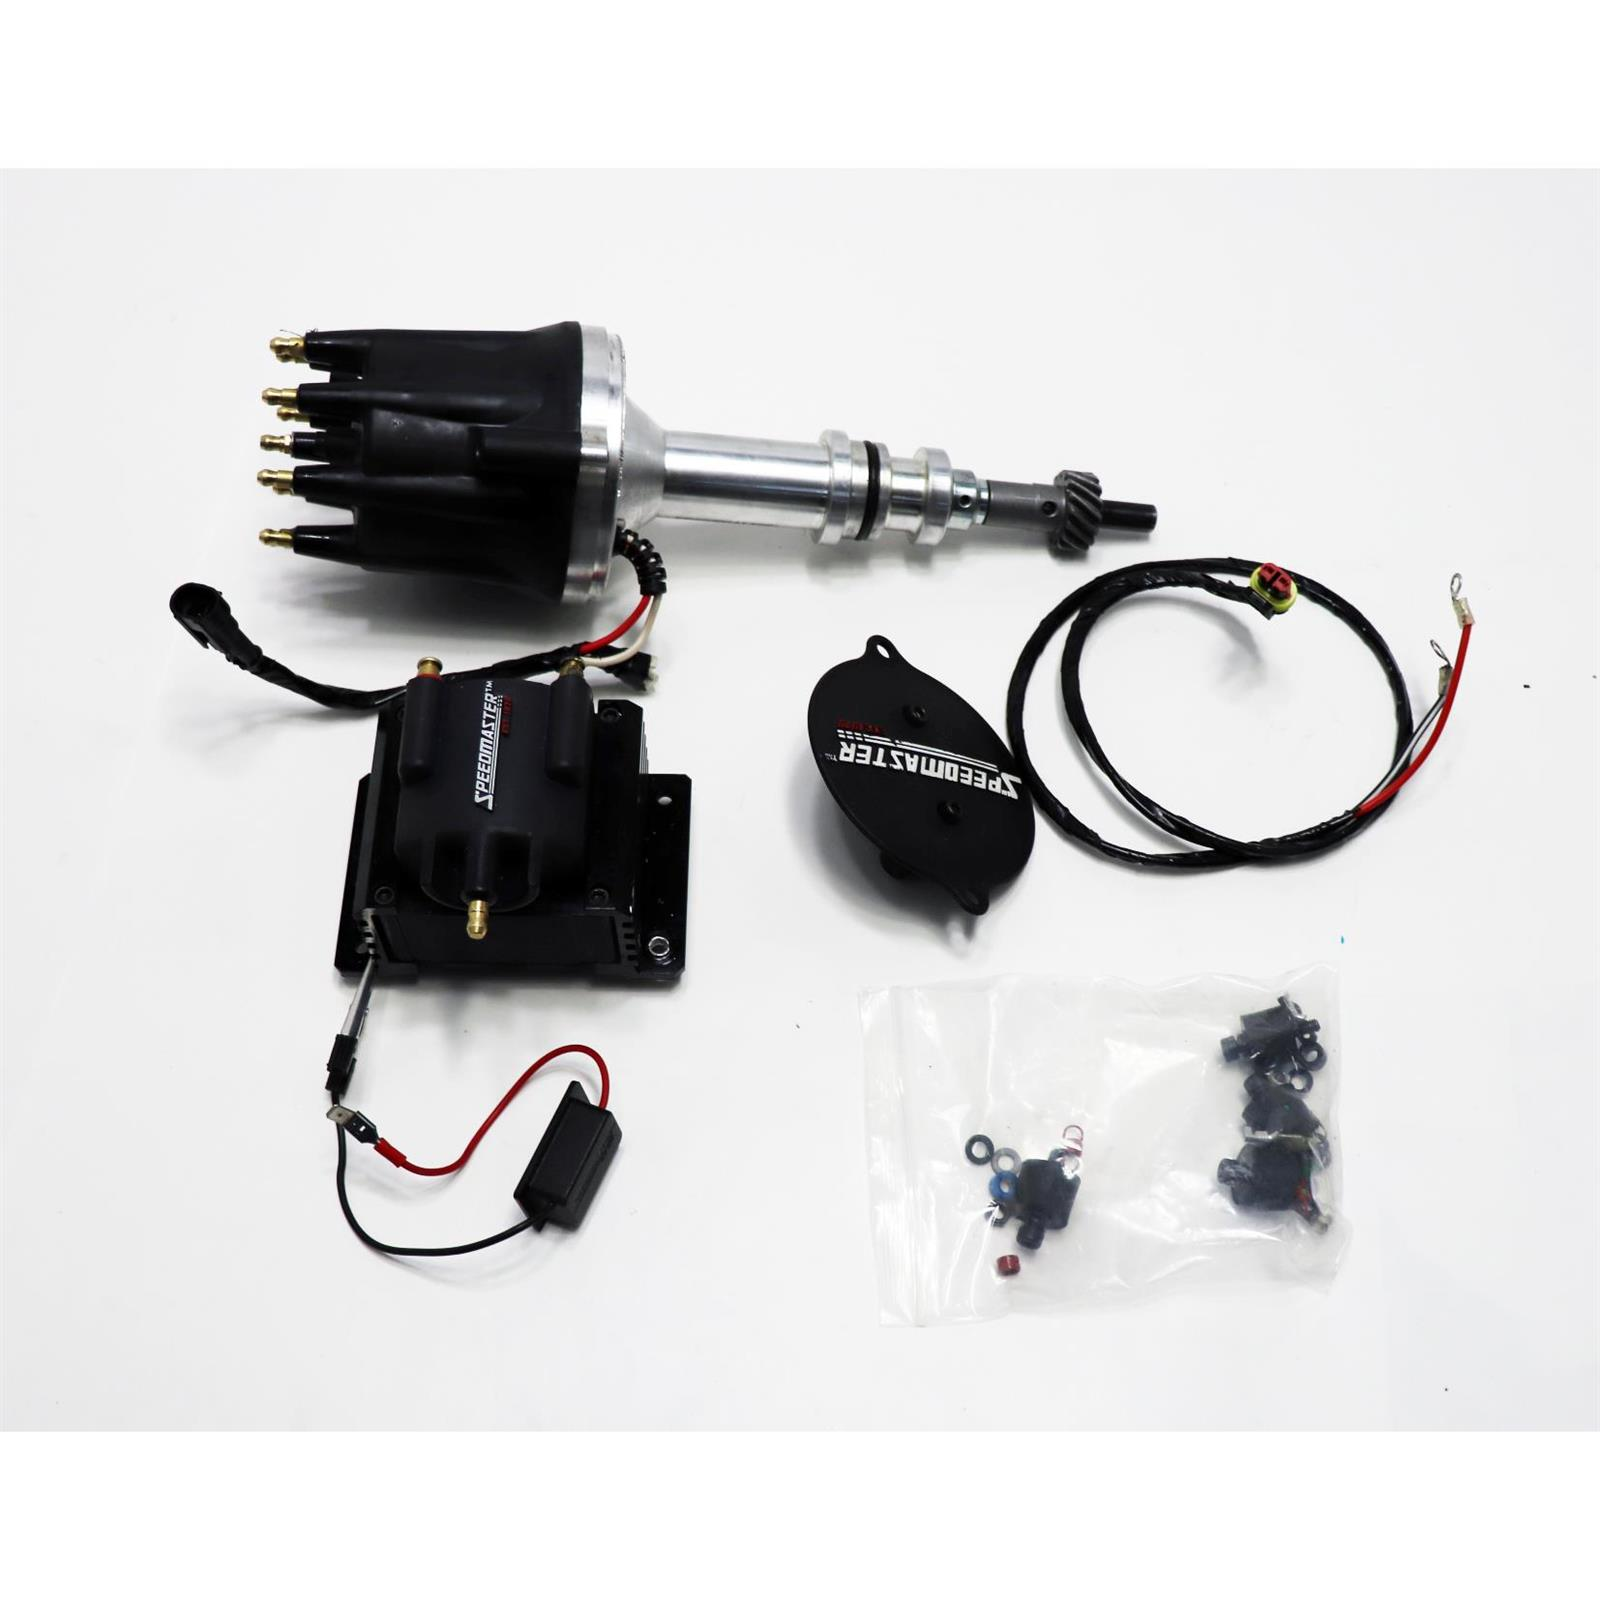 Hei Distributor Wiring Diagram Together With Ford 302 Hei Distributor